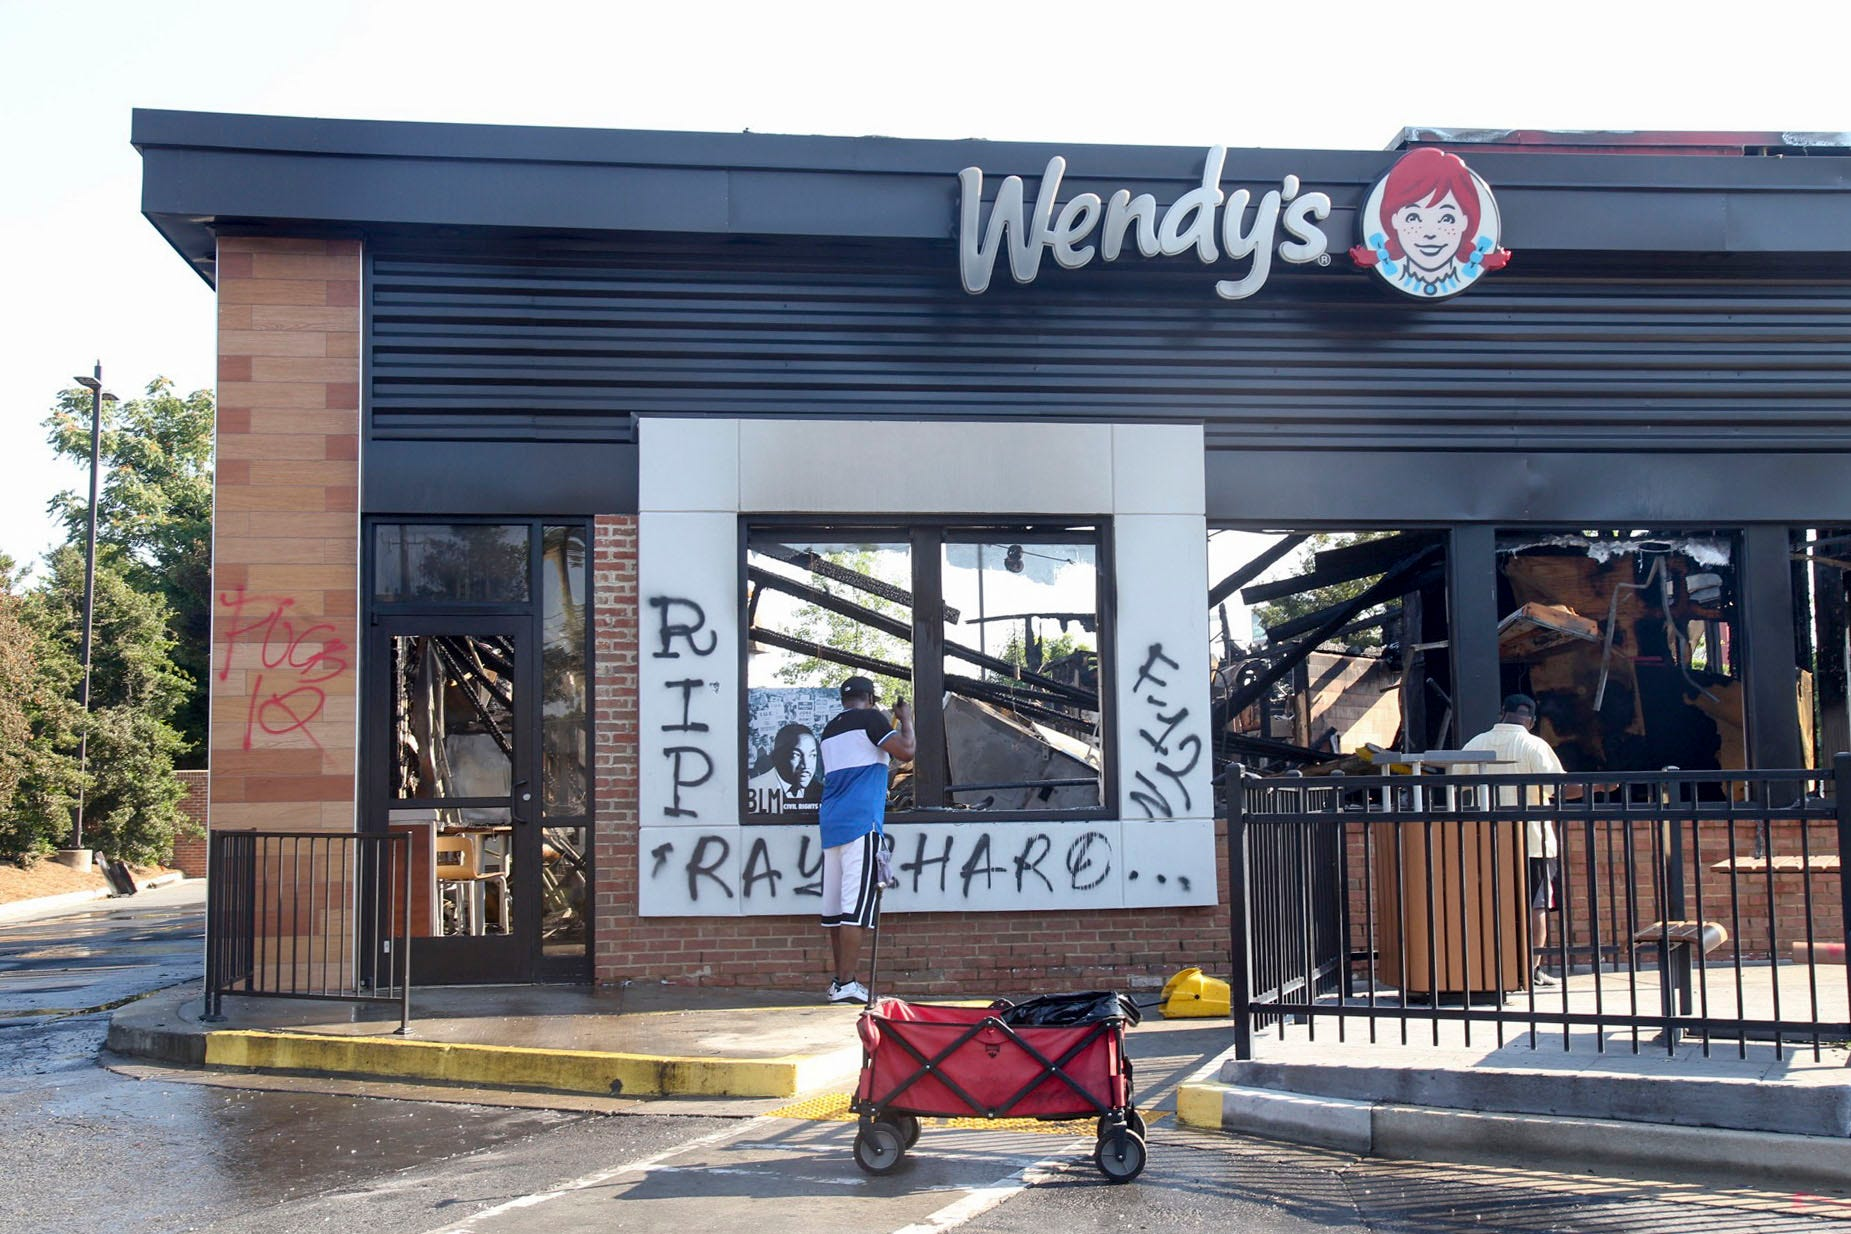 Protest updates: Woman charged in arson of Wendy s; Trump vows order to protect targeted statues; FBI says no hate crime in NASCAR